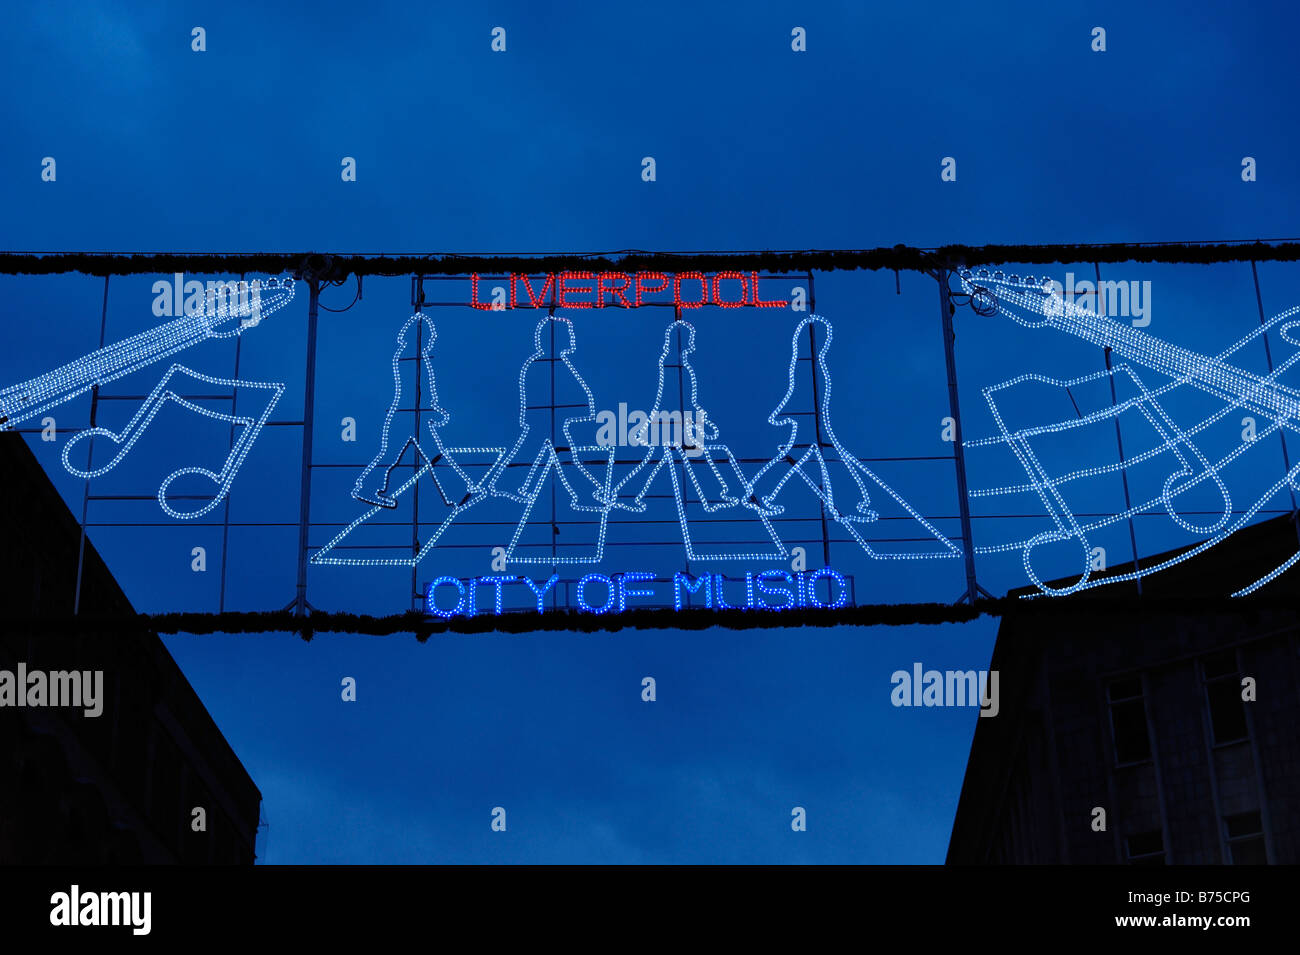 Liverpool City of Music Banner - Stock Image